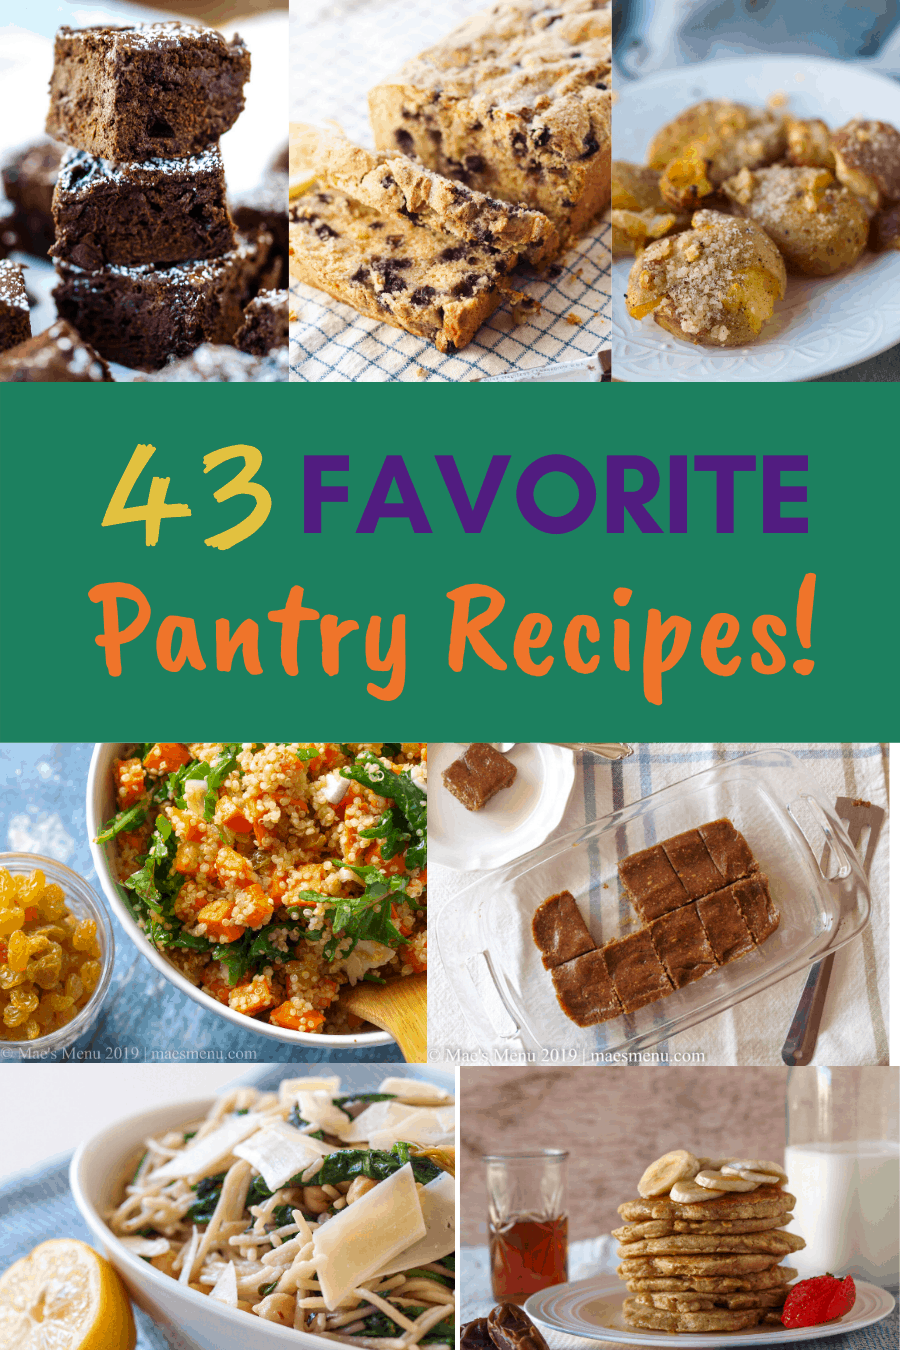 Pinterest Pin for favorite pantry recipes